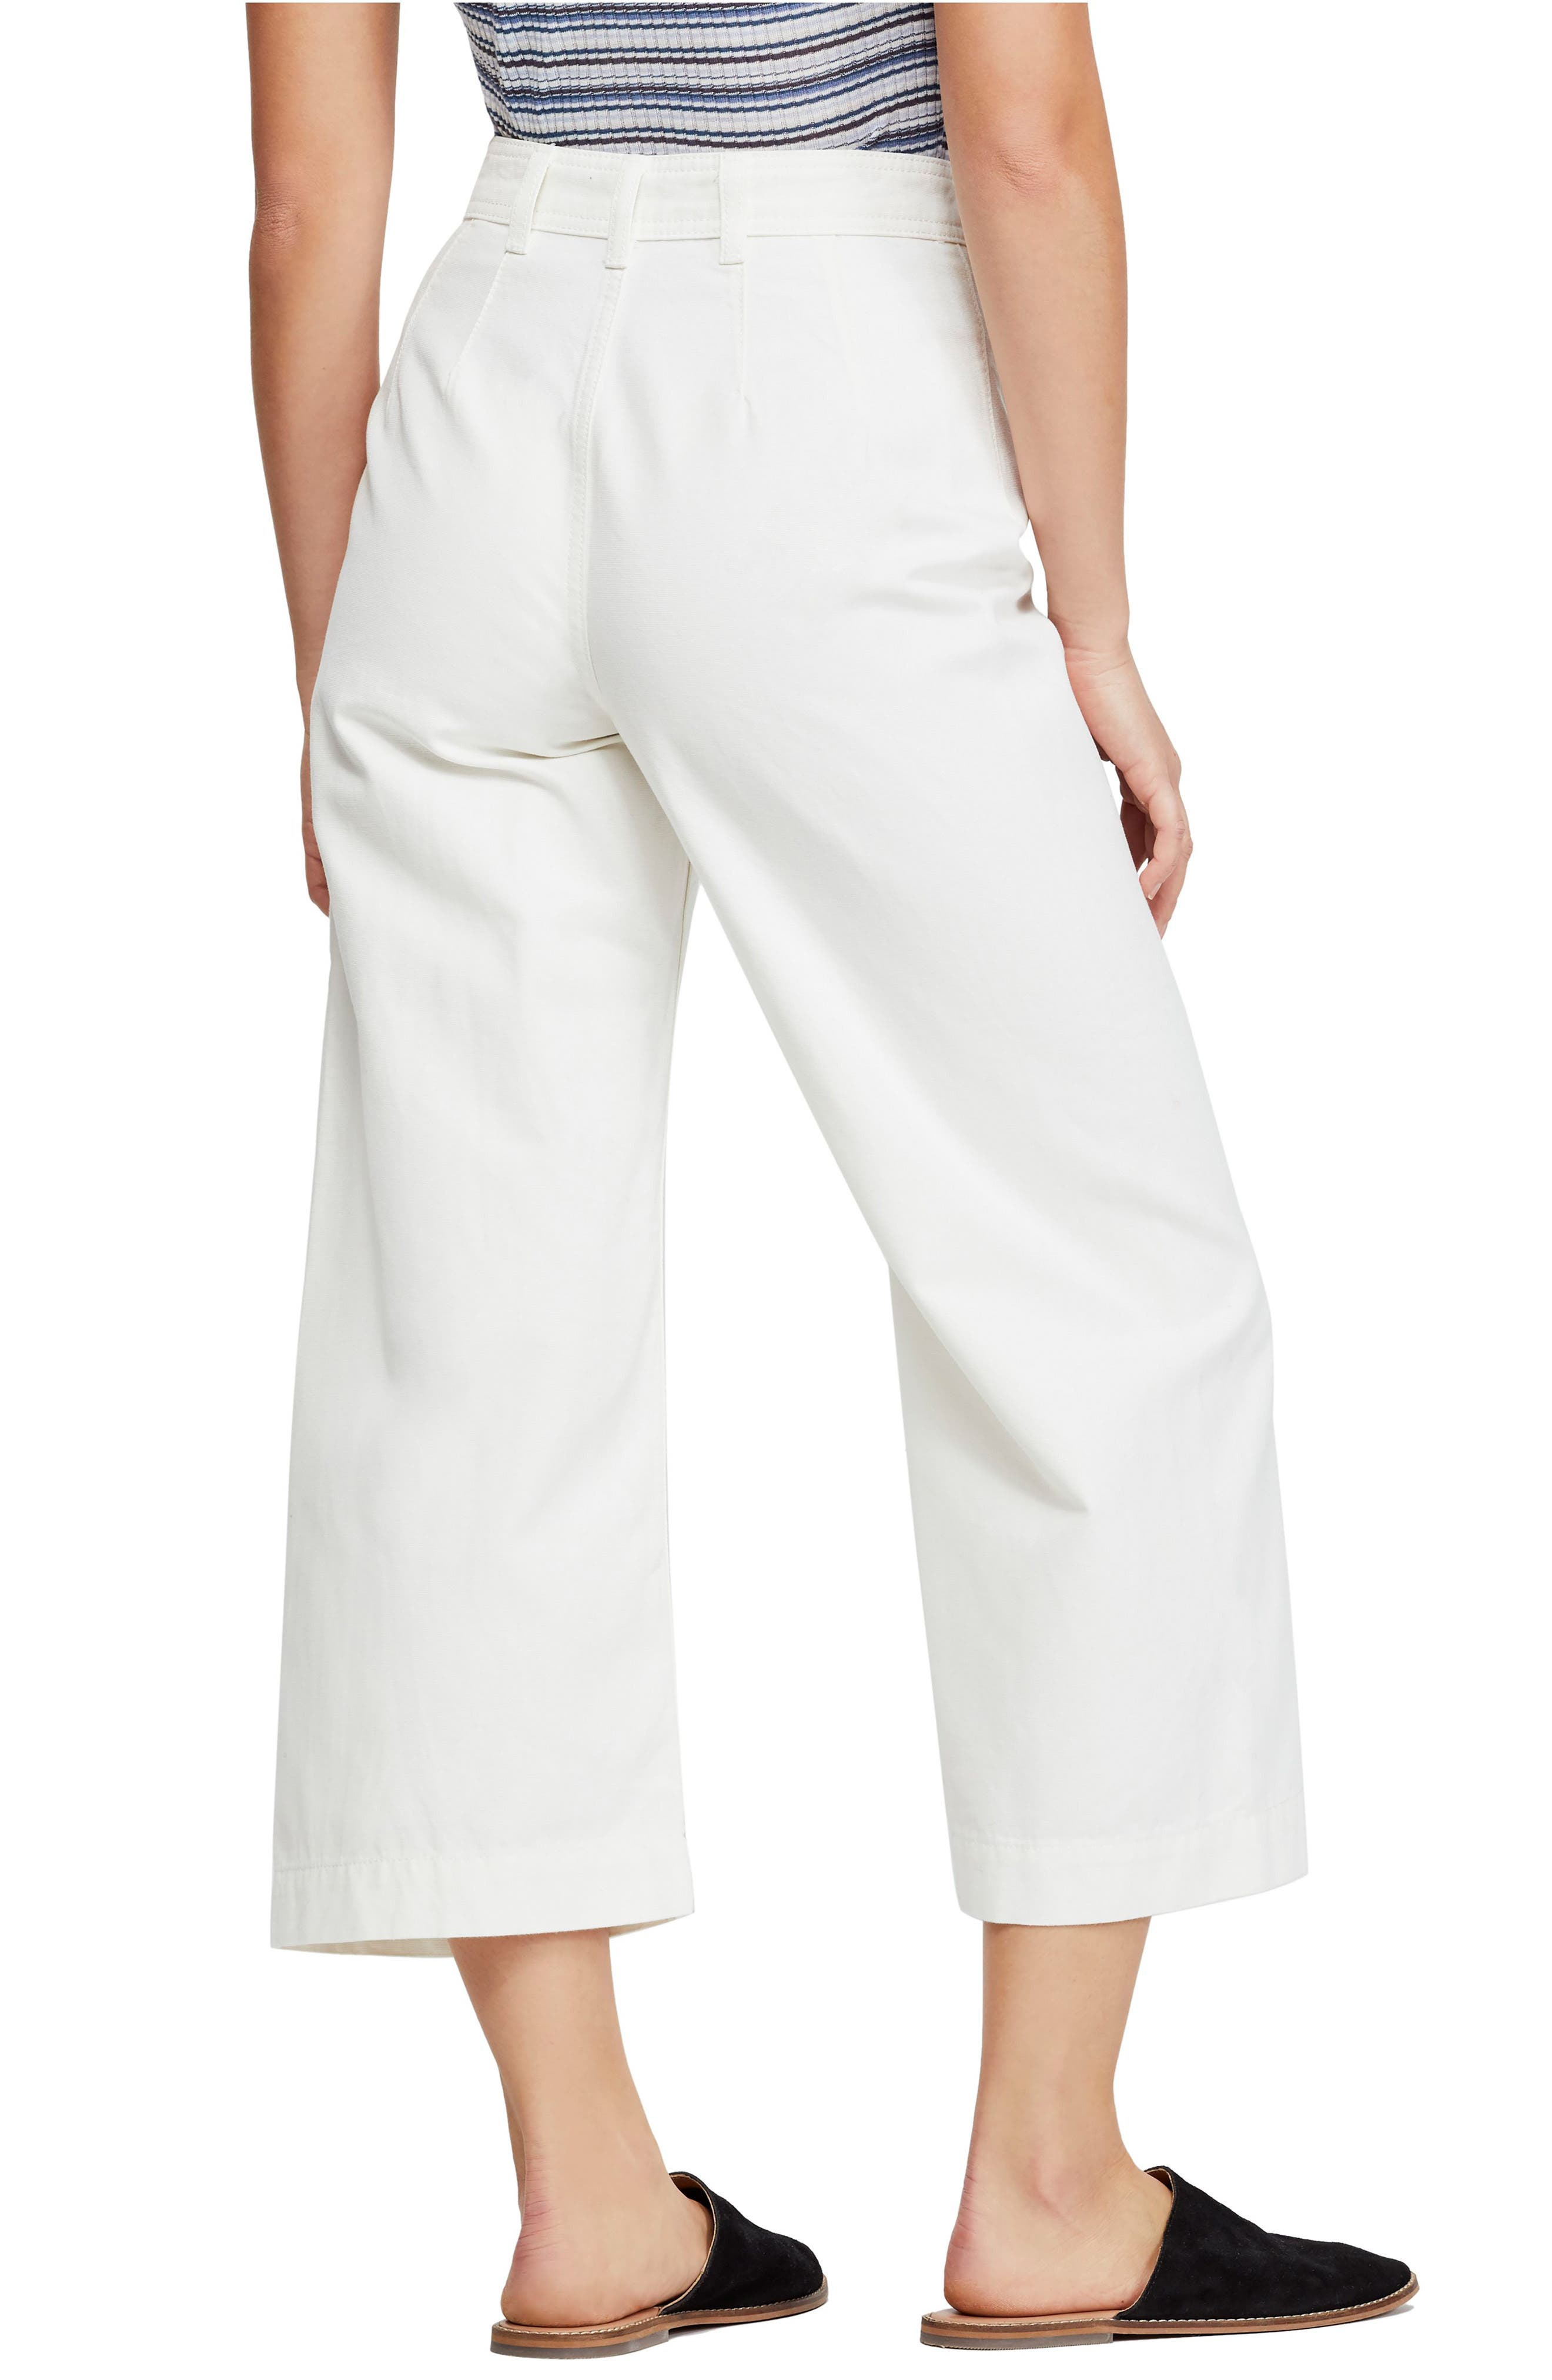 FREE PEOPLE, We the Free by Free People Patti Crop Cotton Pants, Alternate thumbnail 2, color, IVORY